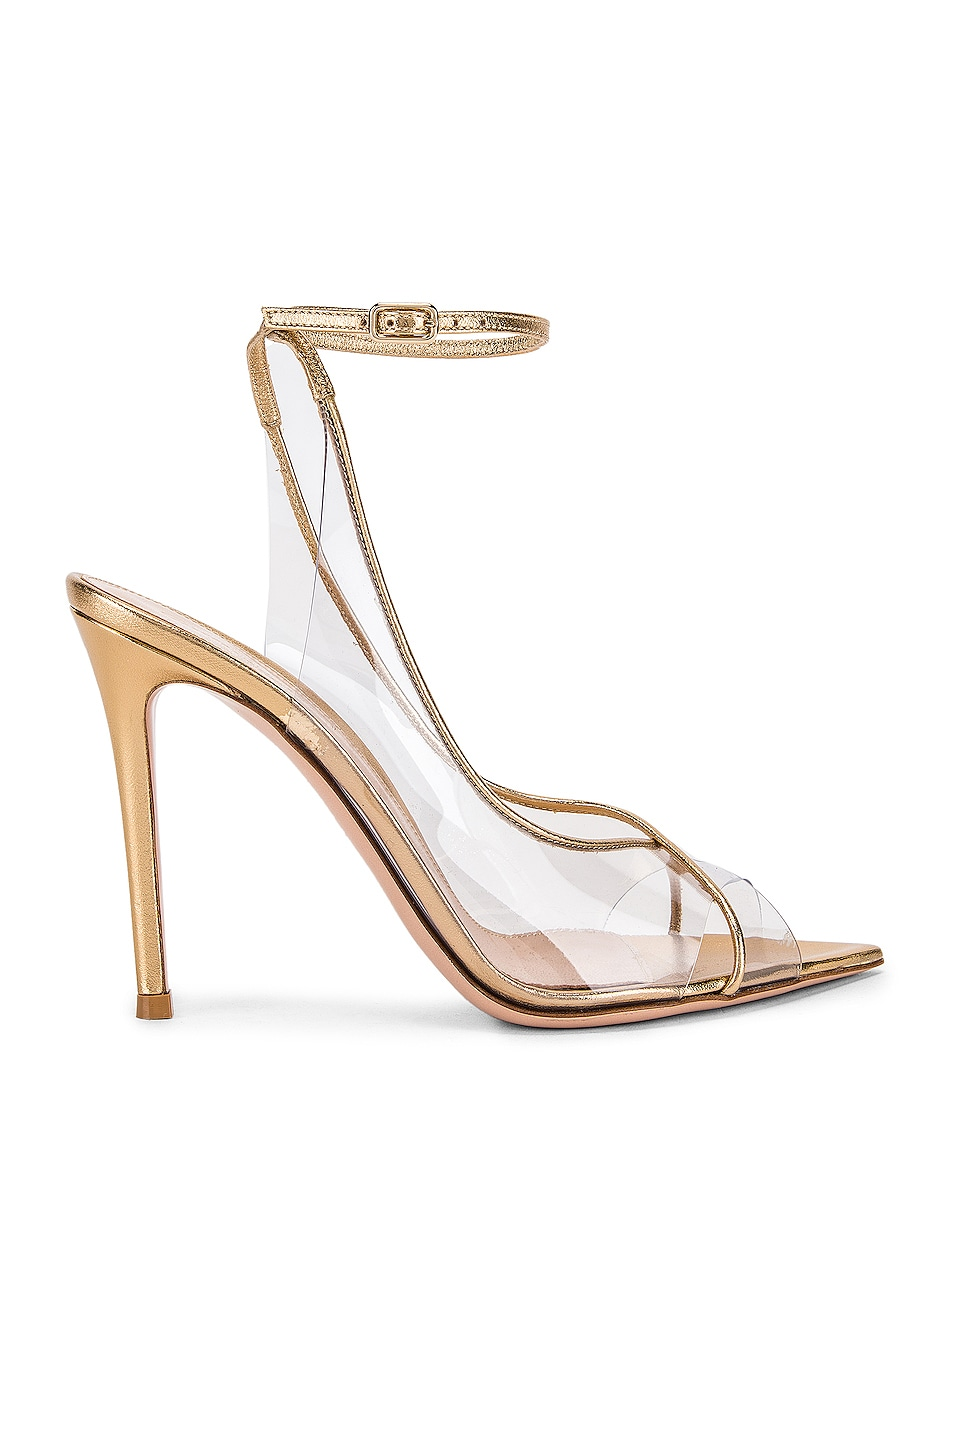 Image 1 of Gianvito Rossi Ankle Strap Heels in Gold & Transparent